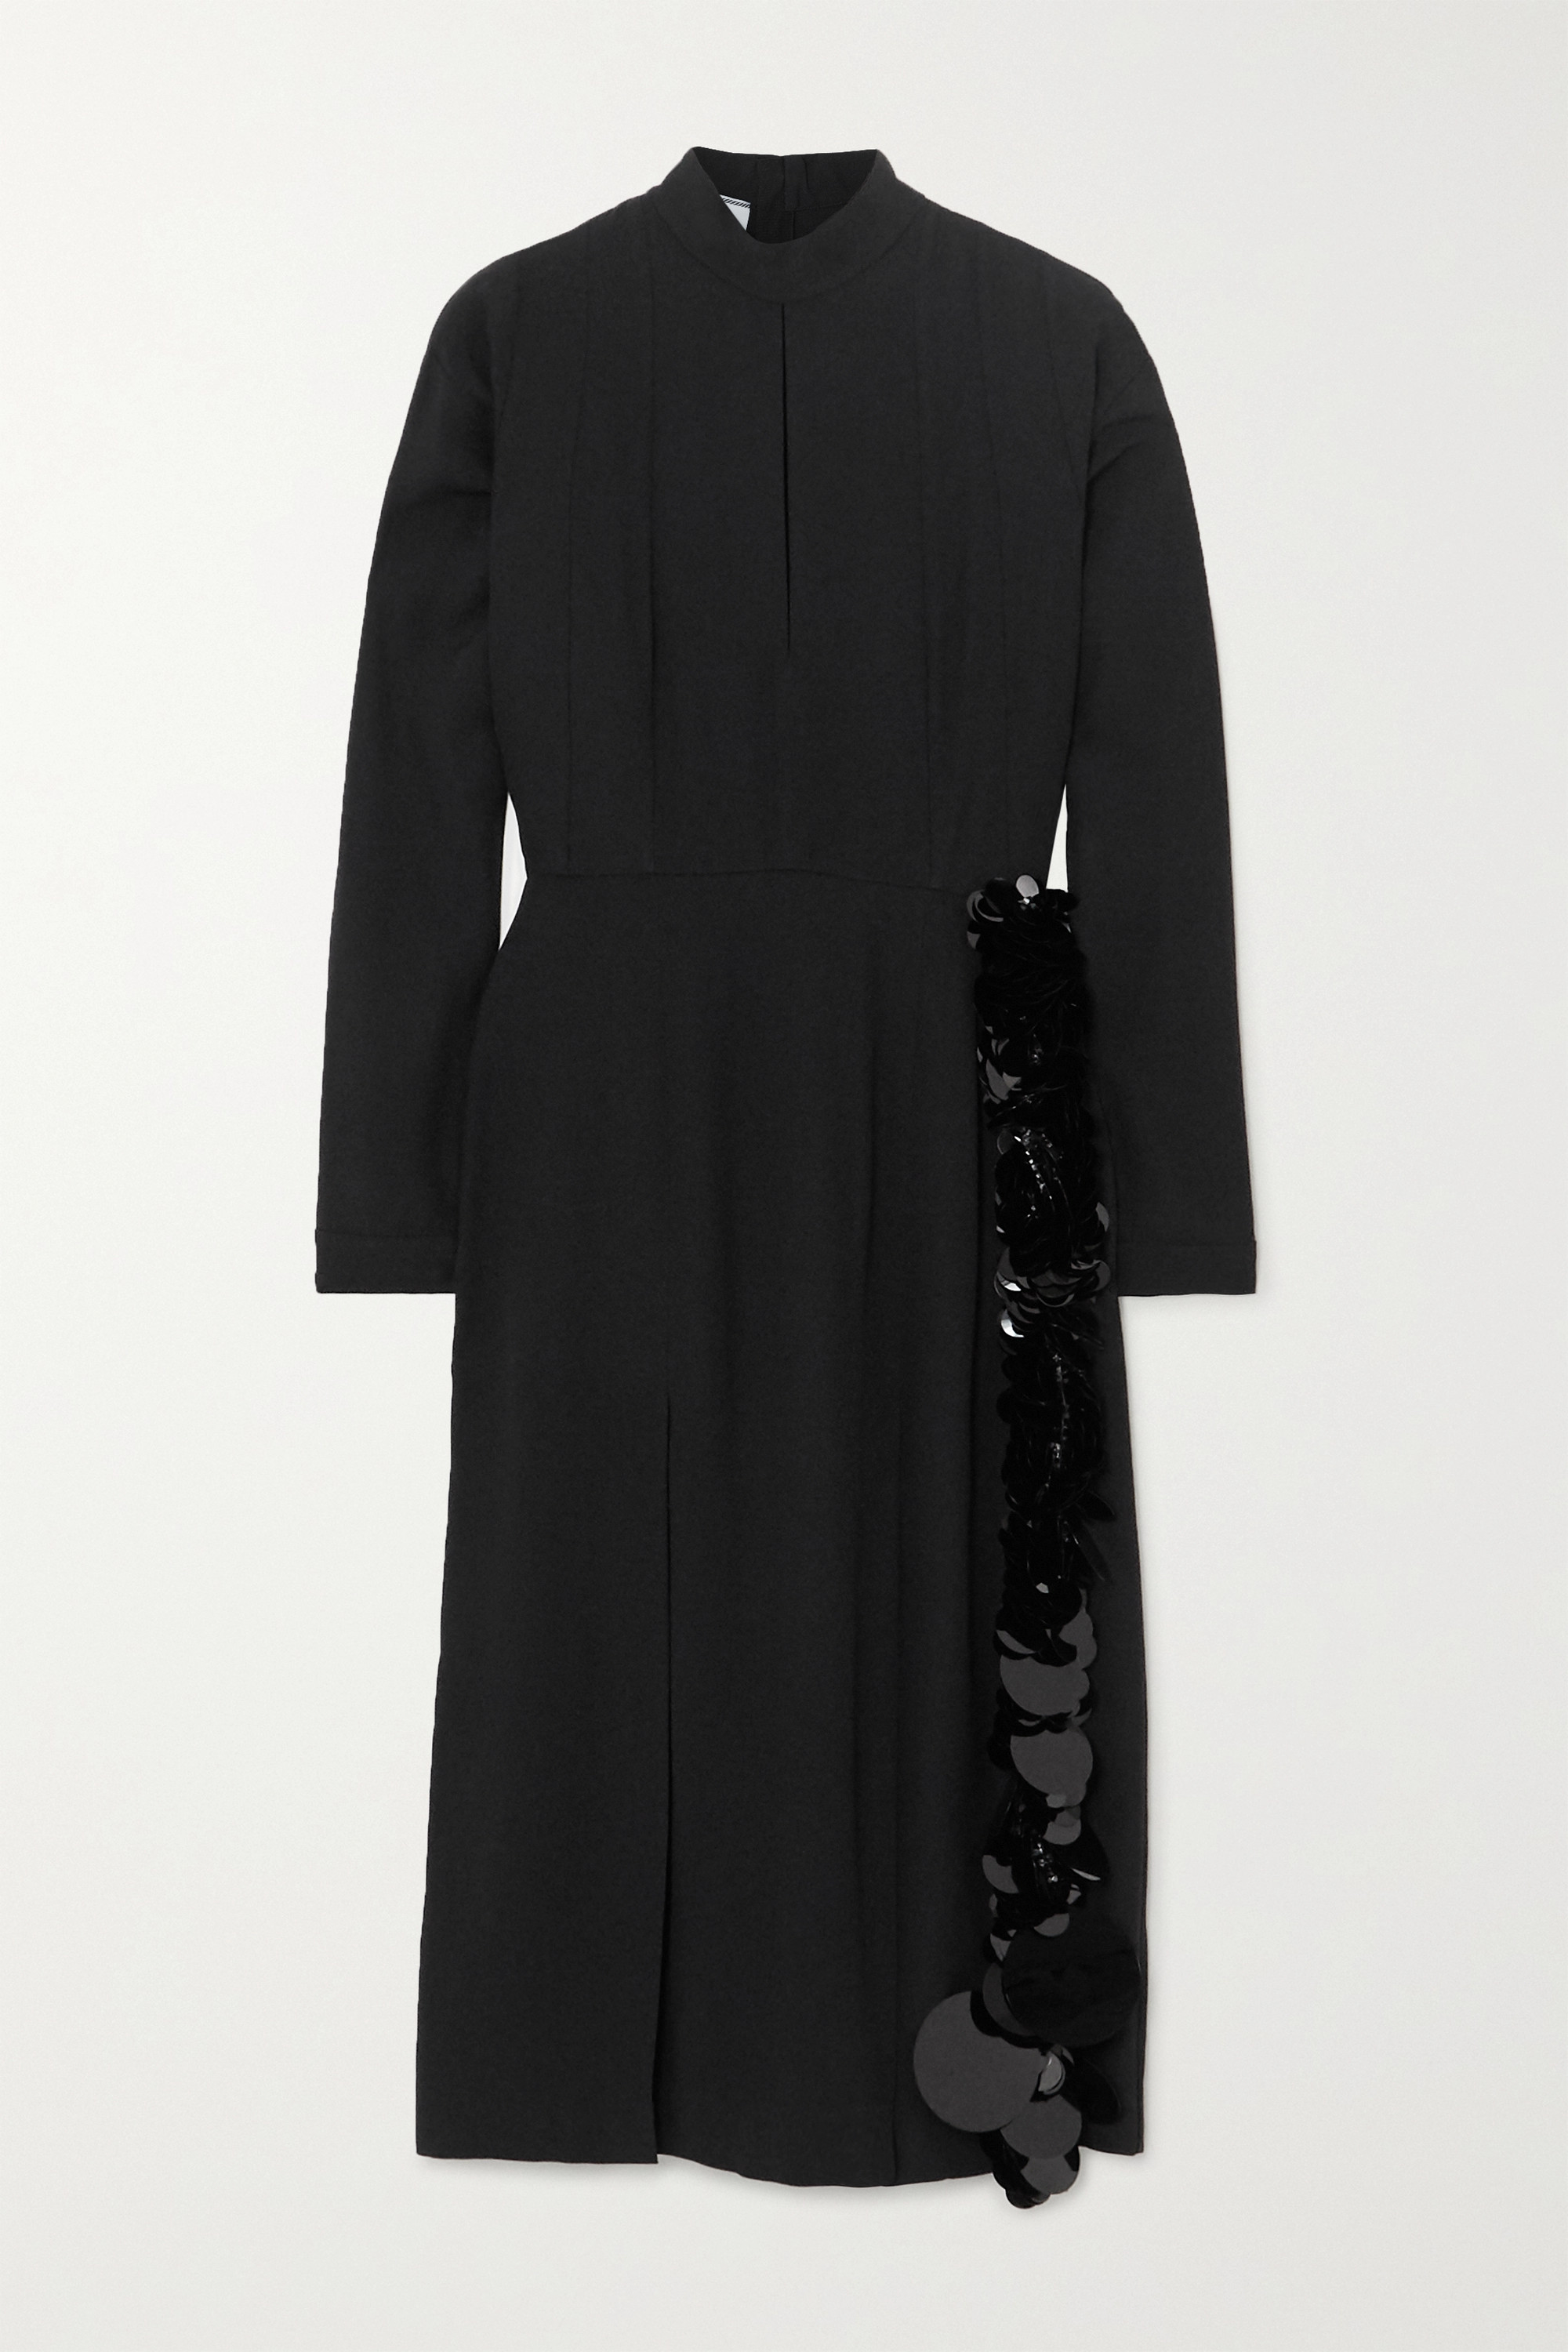 Prada Paillette and bead-embellished crepe midi dress